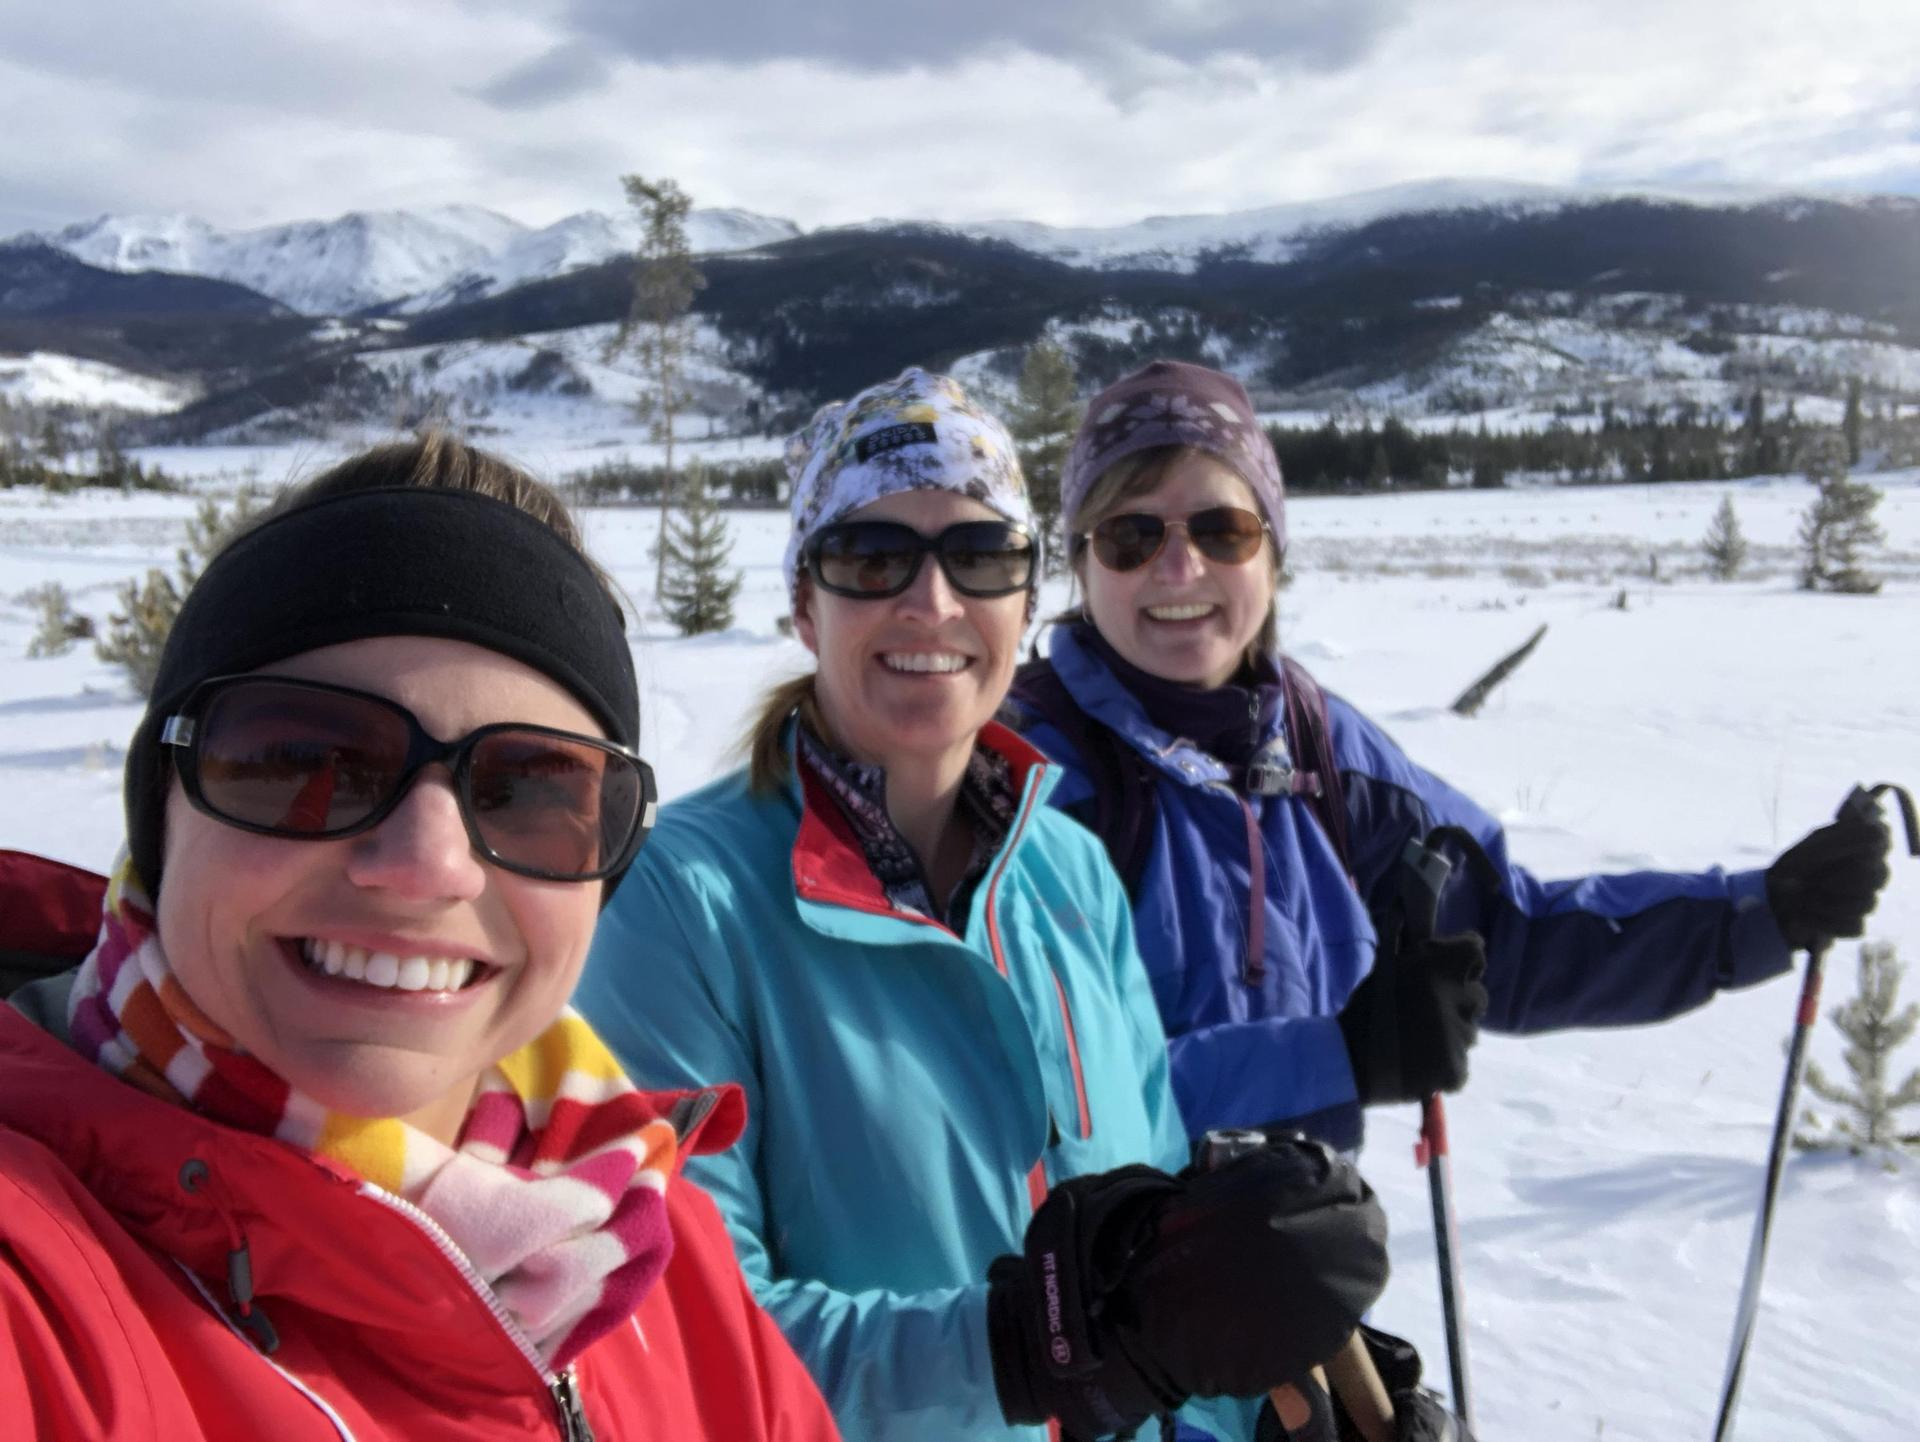 Skiing with Ms. Cutshall and Ms. Wagner, 2019